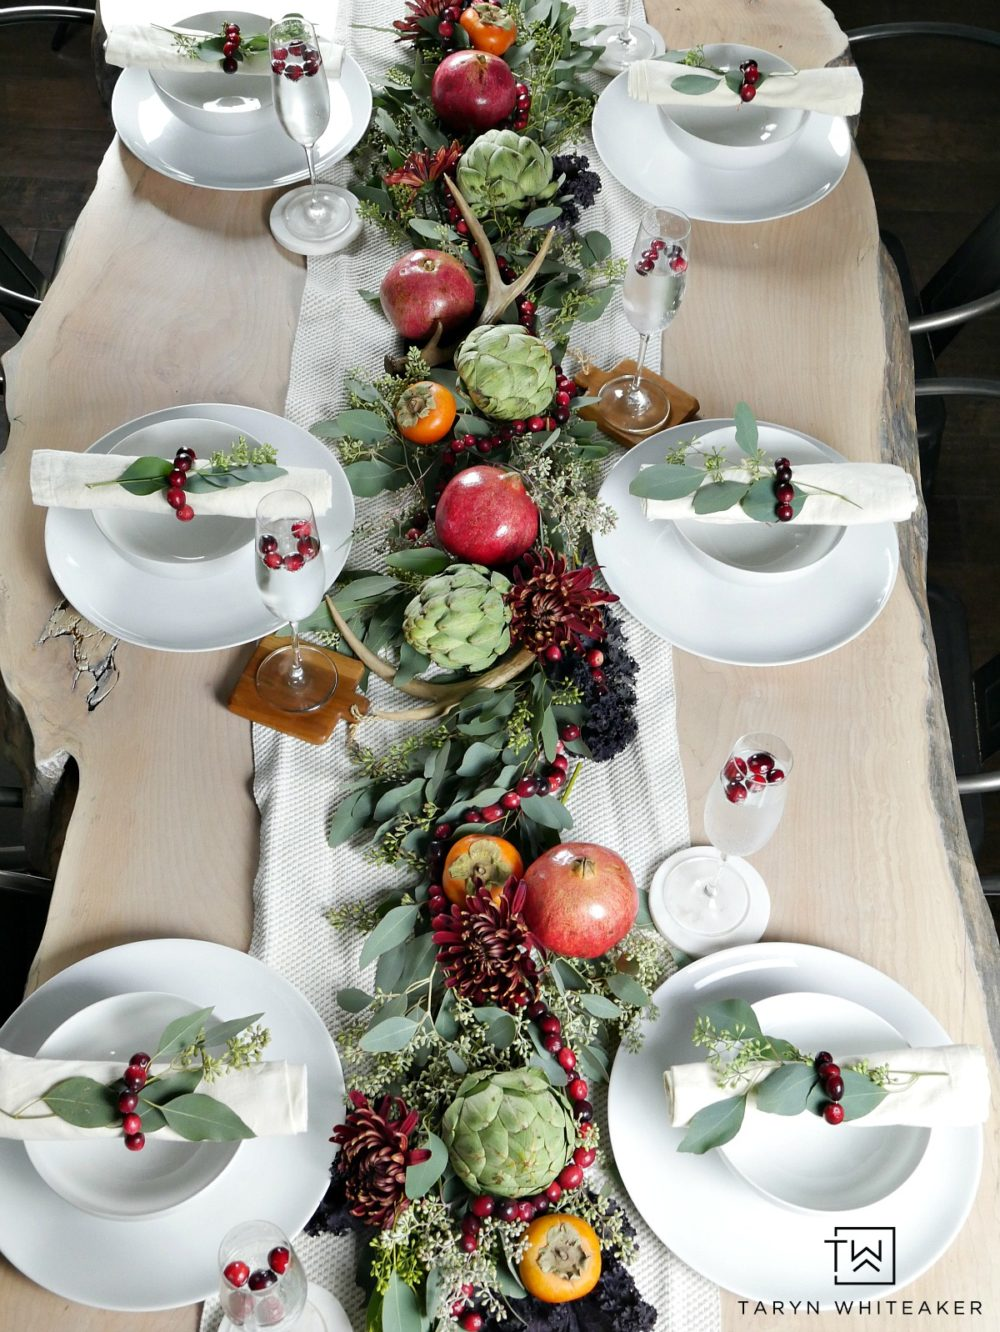 Gorgeous and classy fall table decor using pomegranates, artichokes and cranberries. Love all the natural colors of all brought into this table.